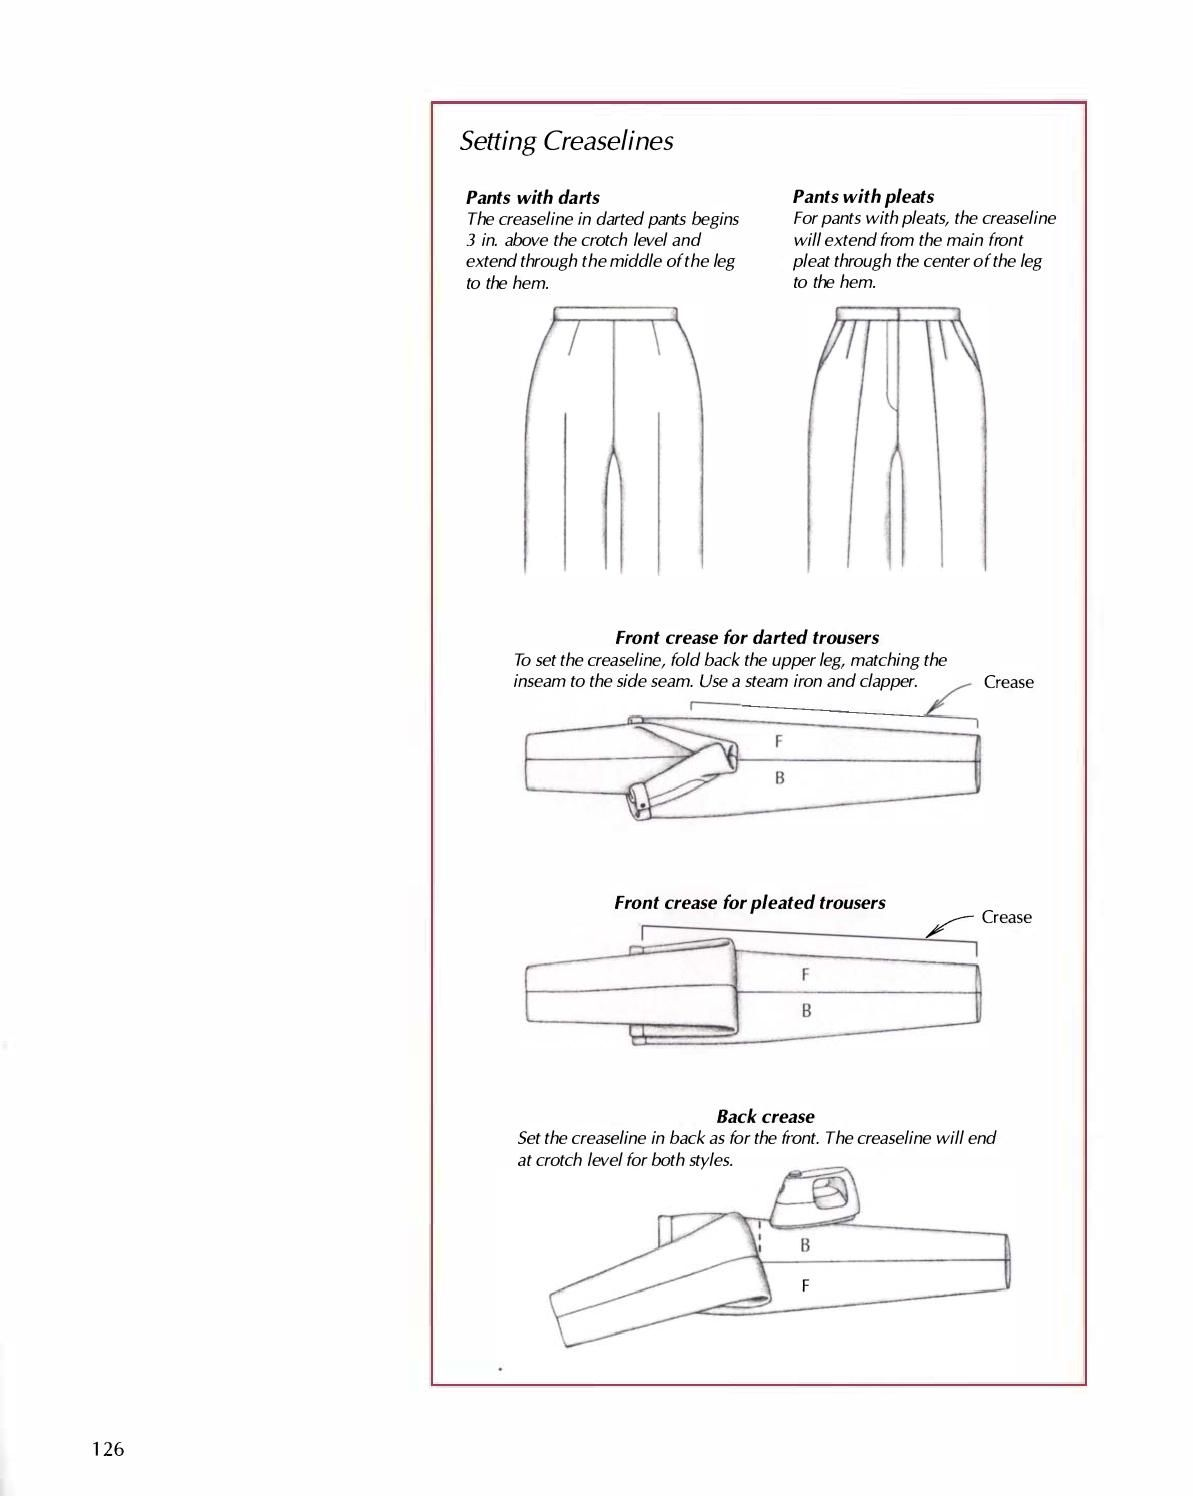 Easy guide to sewing pants newspaper and patterns easy guide to sewing pants sewing pantspattern makingfashion tips jeuxipadfo Image collections